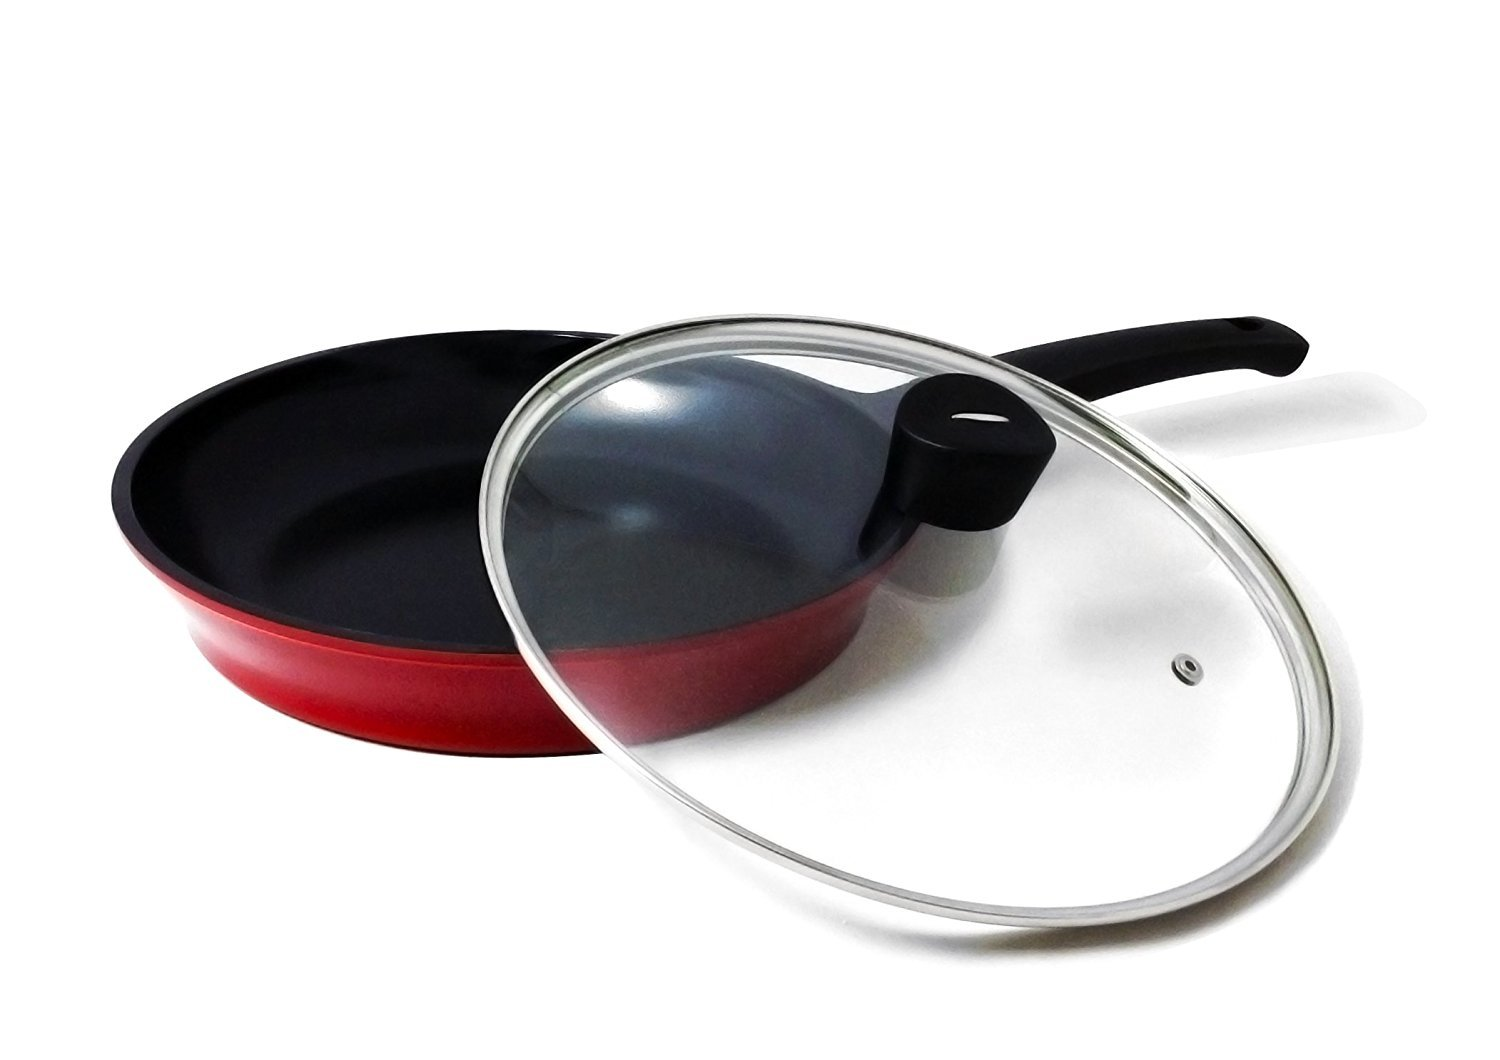 Flamekiss 10 Red Ceramic Coated Fry Pan by AmorÚ ...